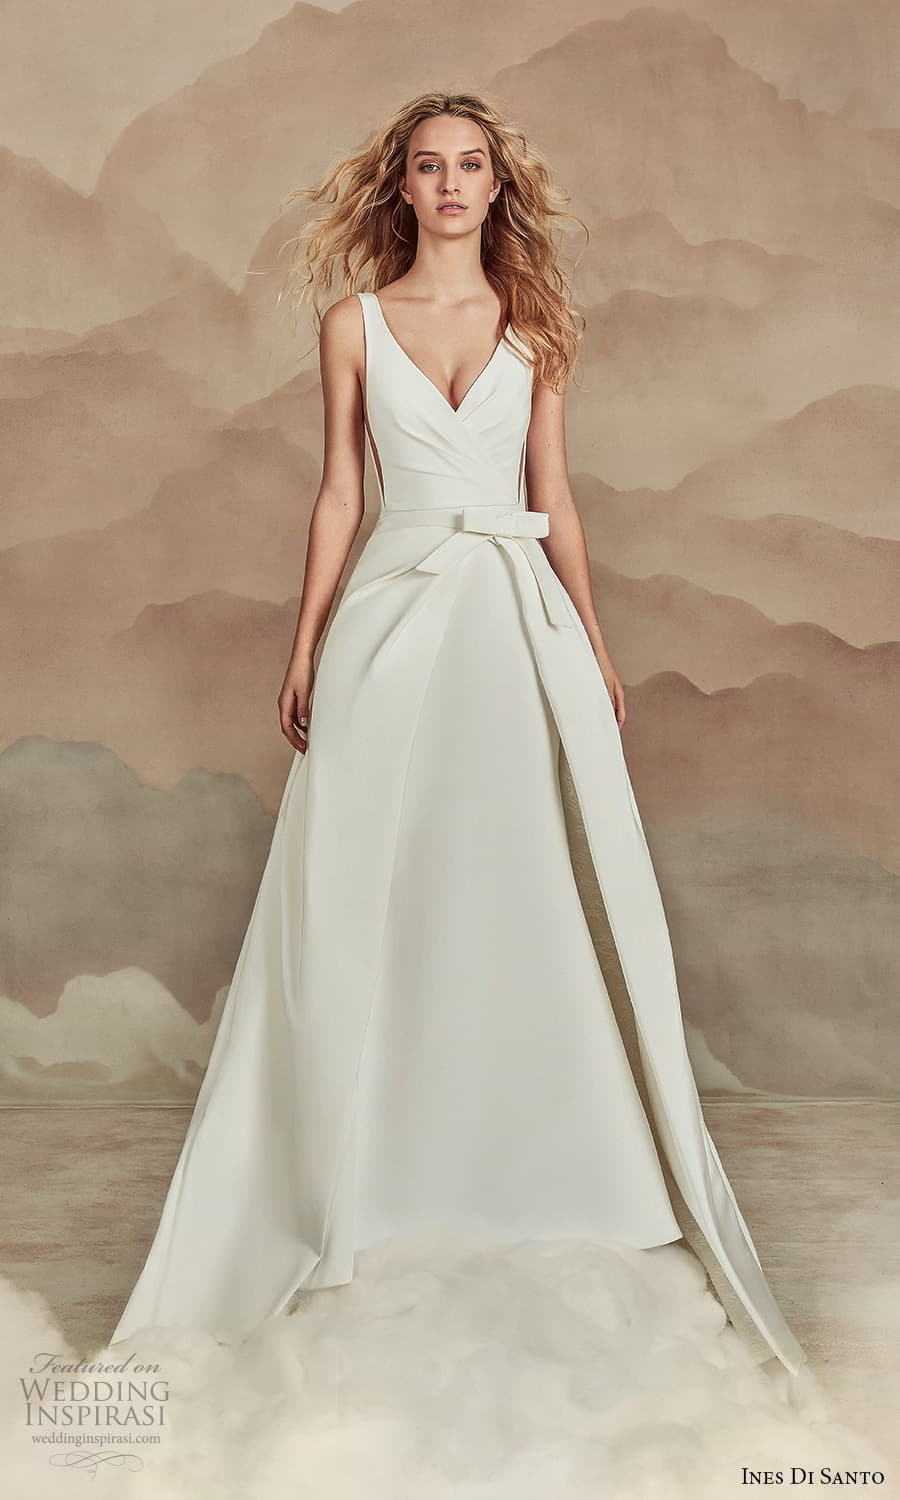 ines di santo spring 2022 bridal sleeveless straps v neckline clean minimalist a line ball gown wedding dress chapel train (17) mv